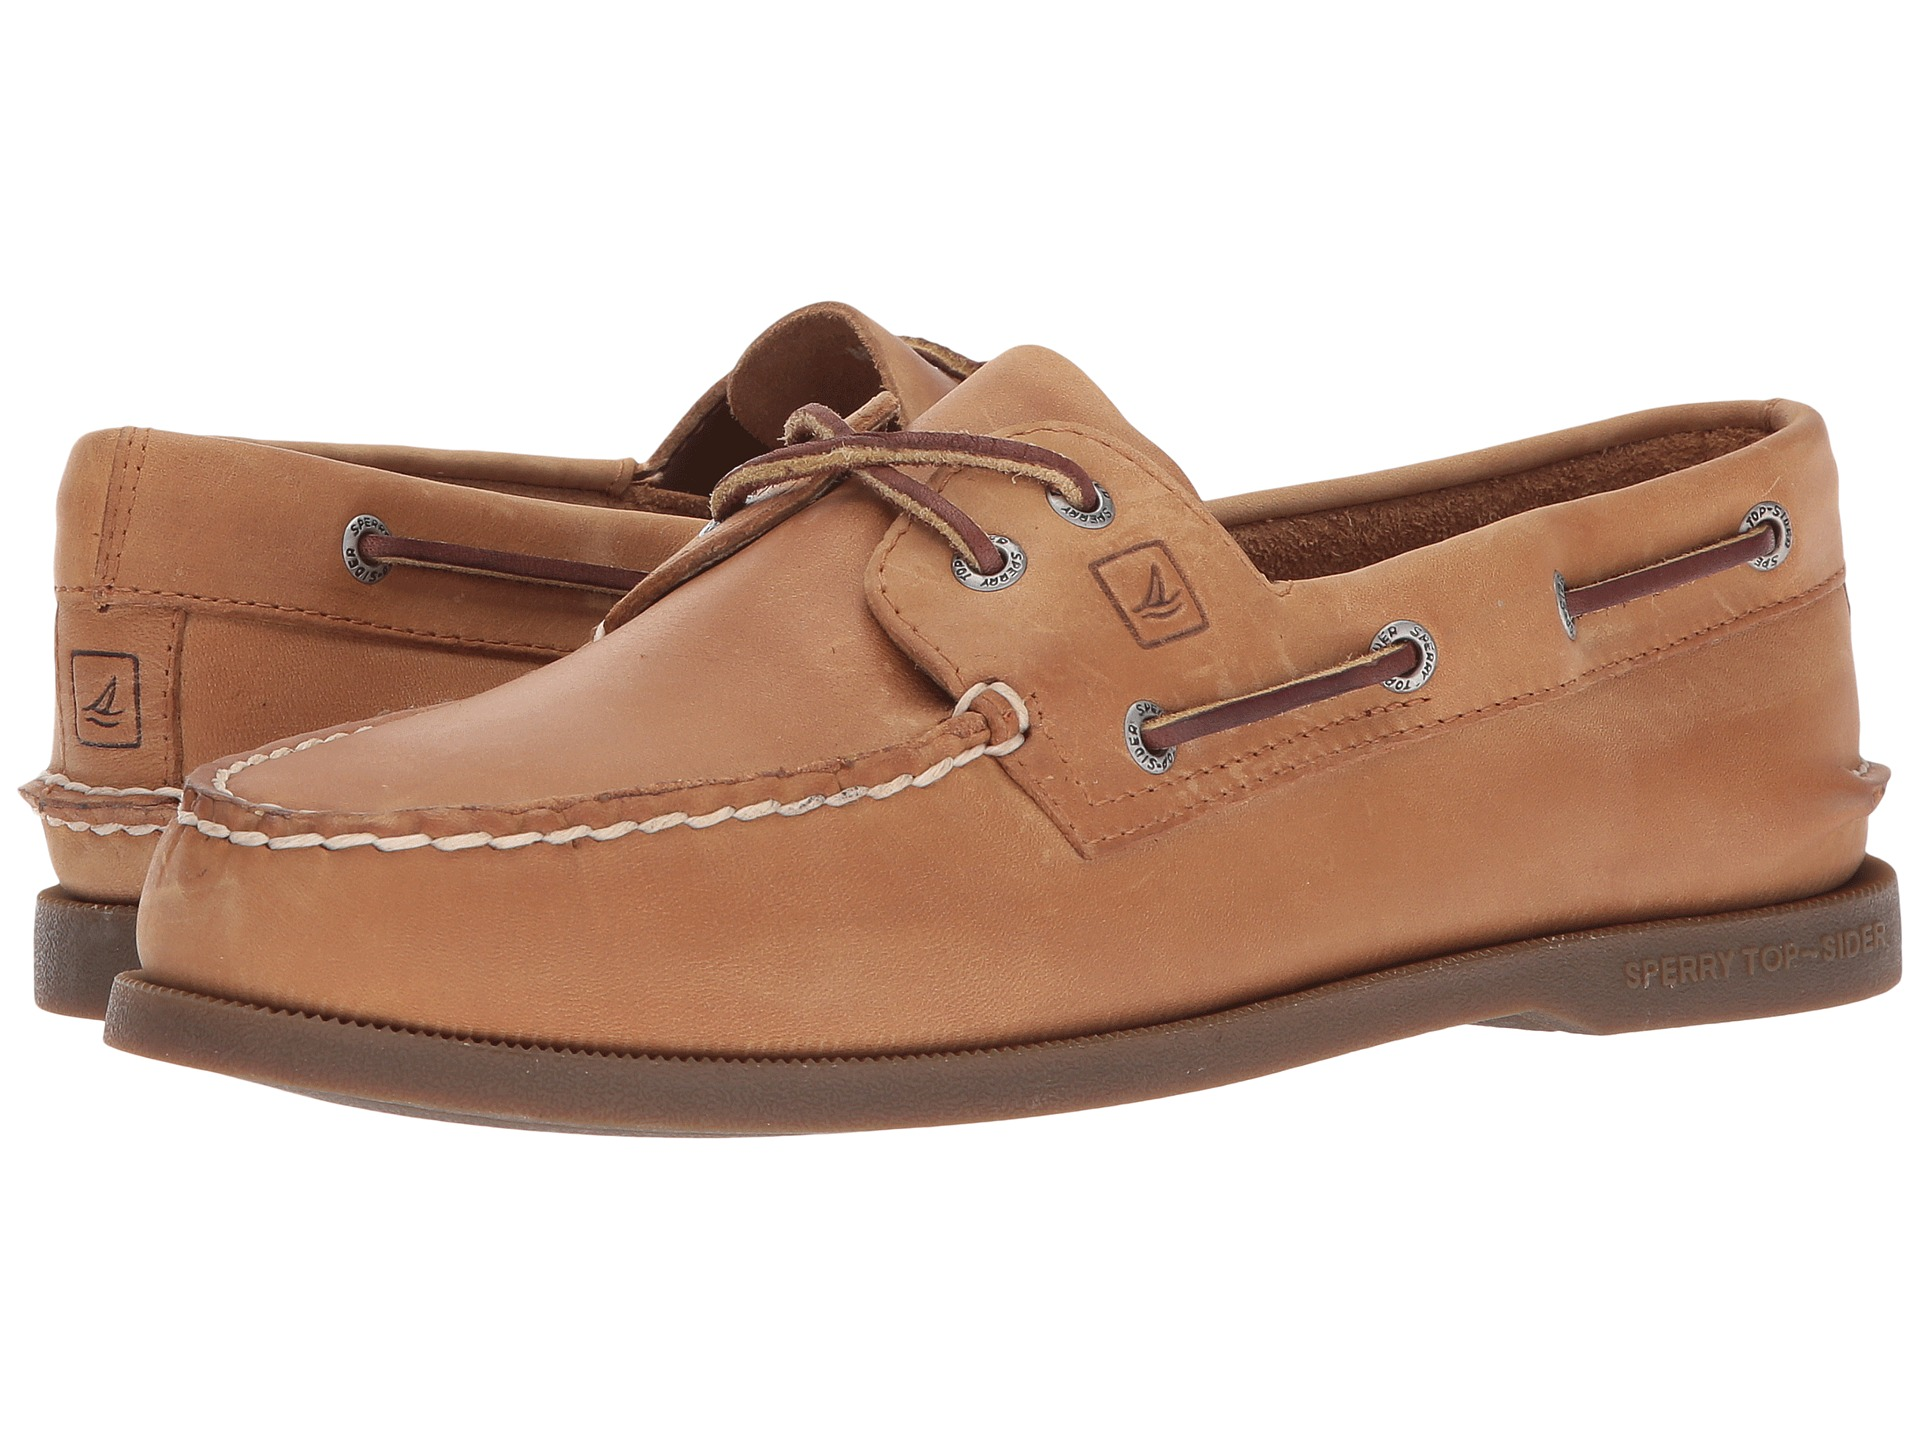 Sperry Top Sider Shoes For Men Chart